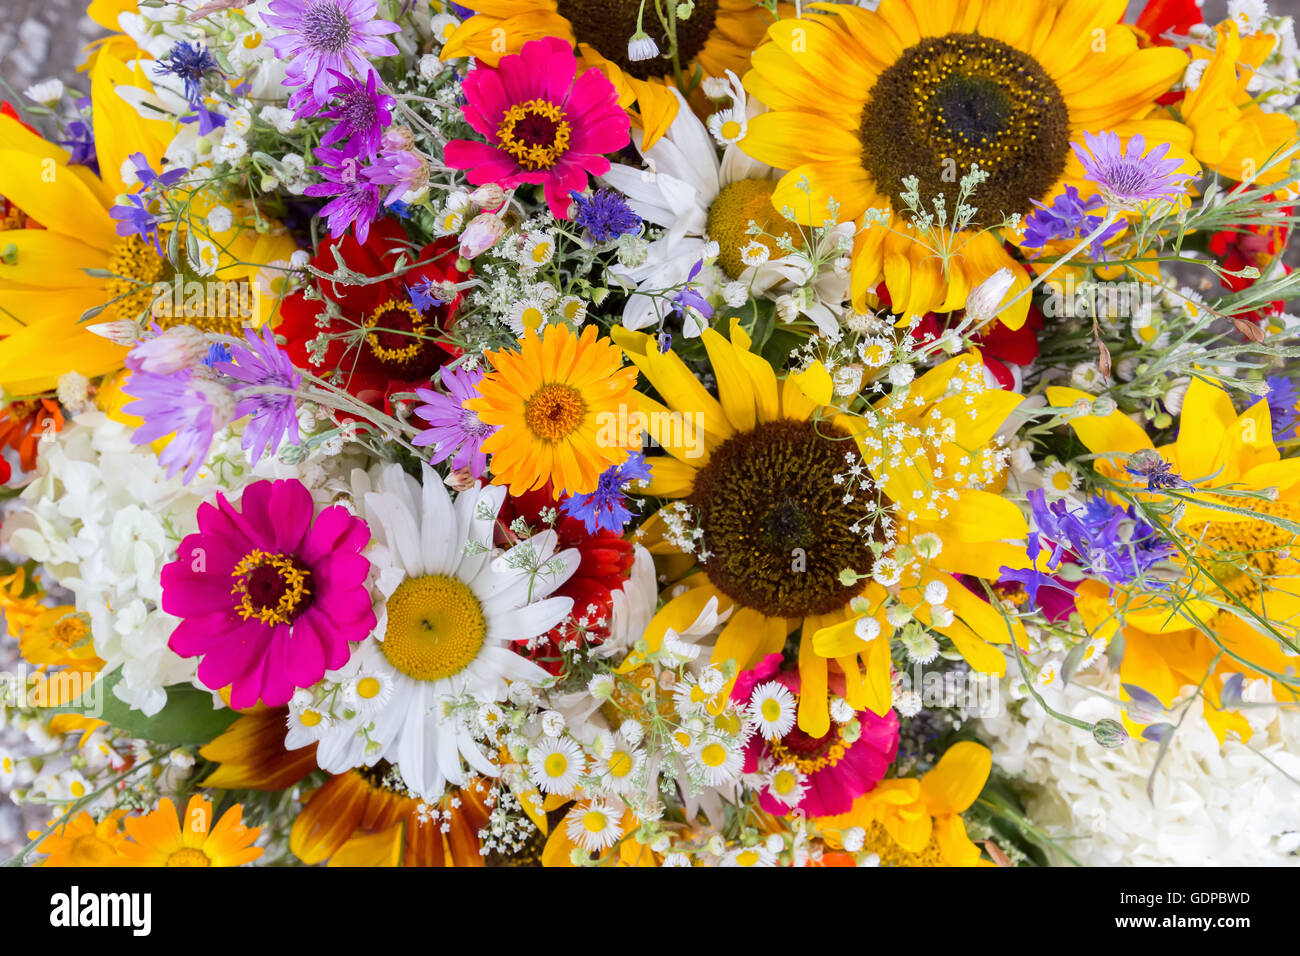 close up of bouquet of flowers. - Stock Image